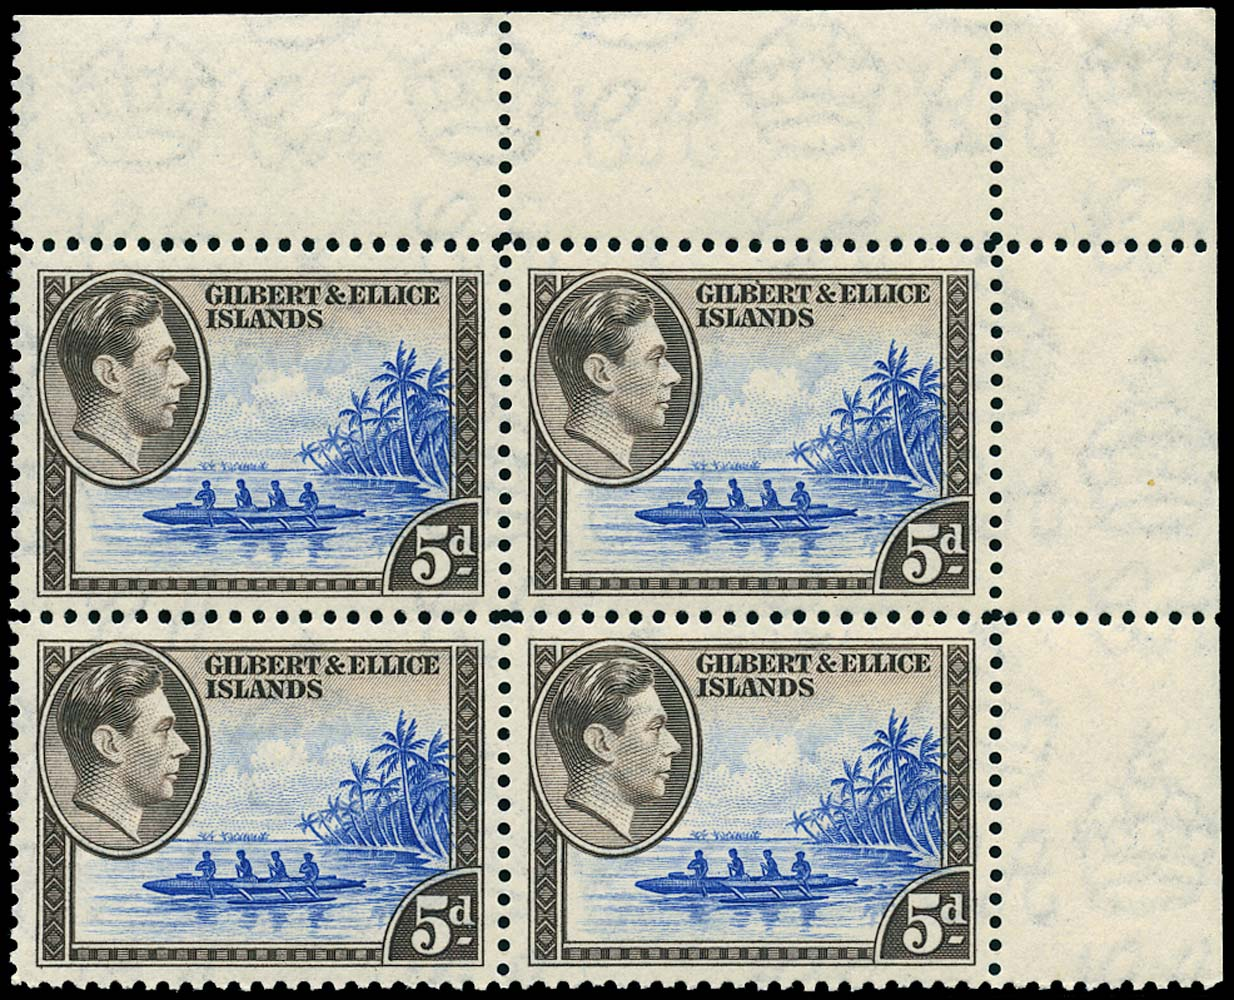 GILBERT & ELLICE IS 1943  SG49a Mint 5d ultramarine and sepia unmounted